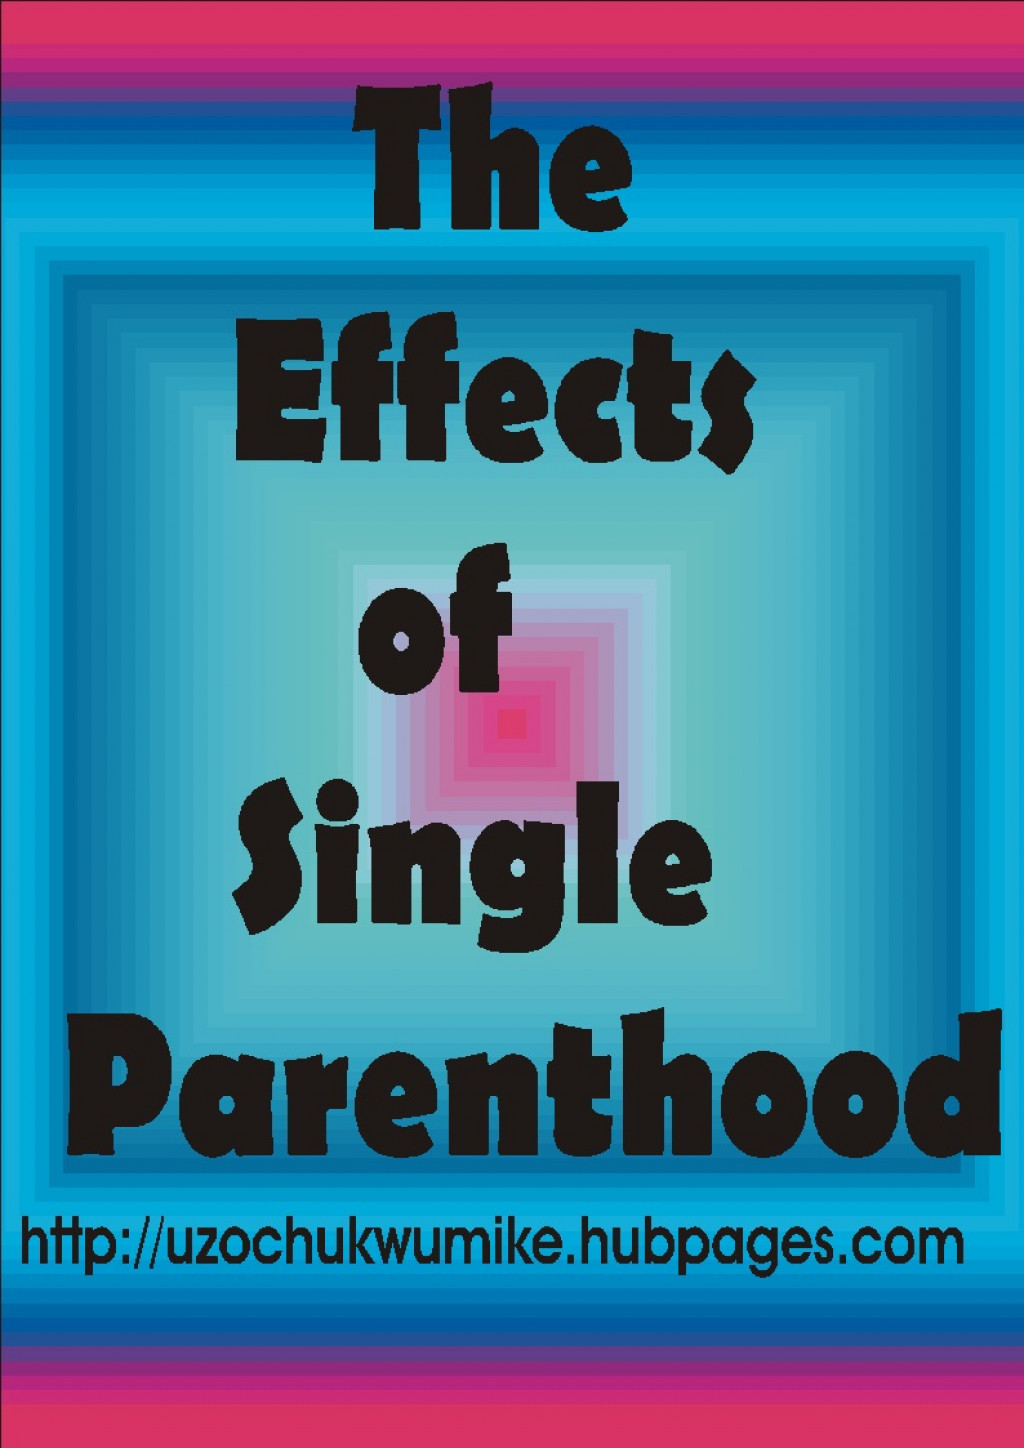 effects of single parenthood Single parenthood in this piece implies either a single mother or father that takes care of children it is a situation whereby a father or a mother takes care of the children in the family without.